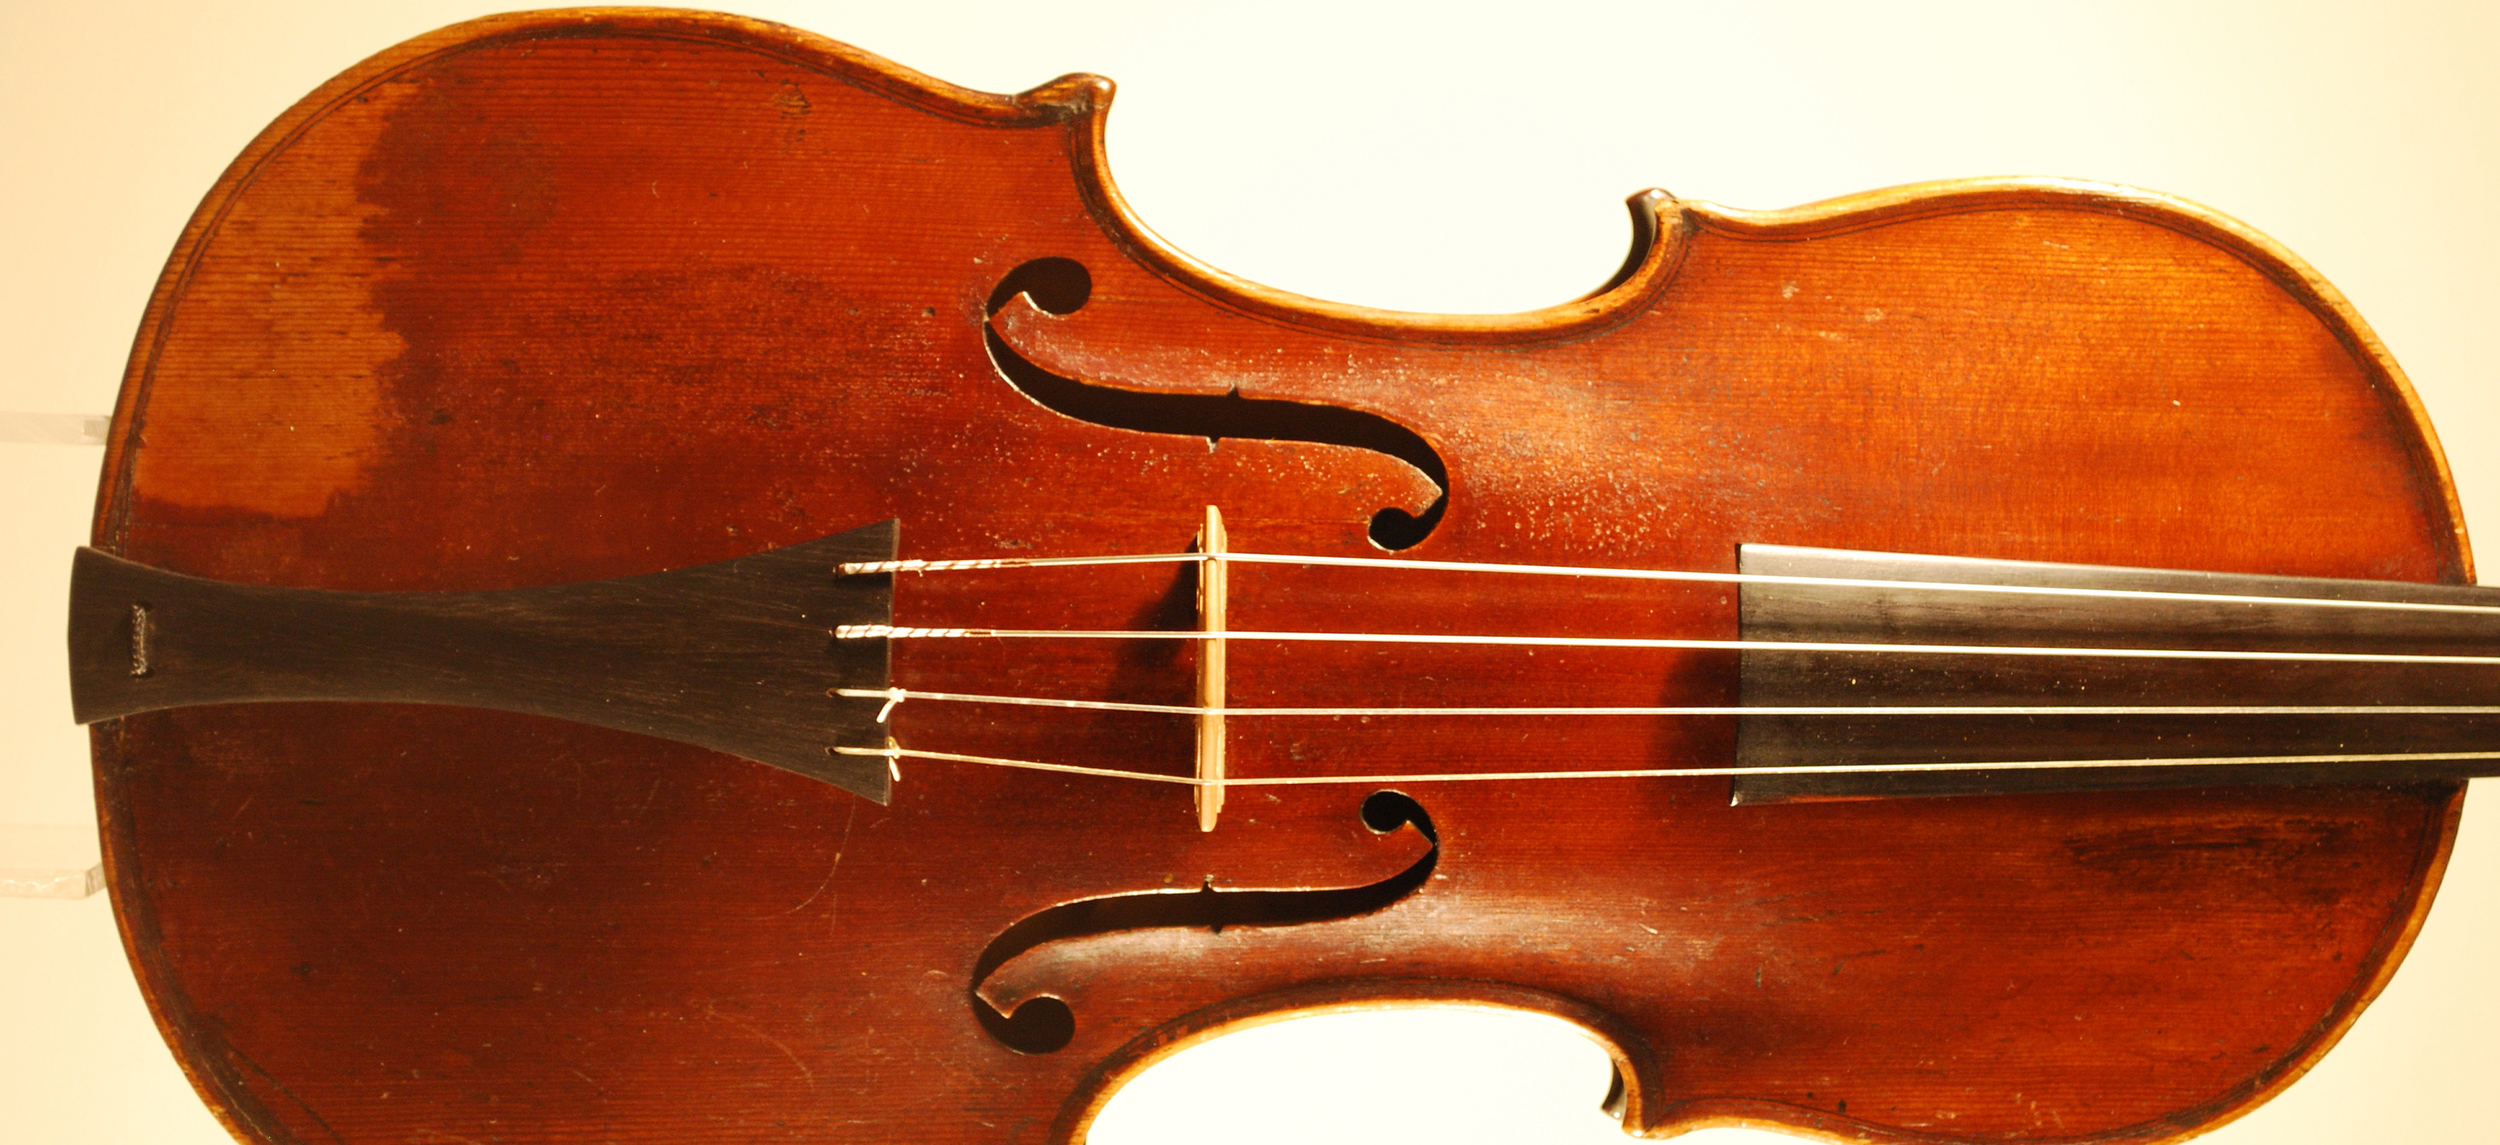 Earlymusicinstruments&bows Edited.jpg